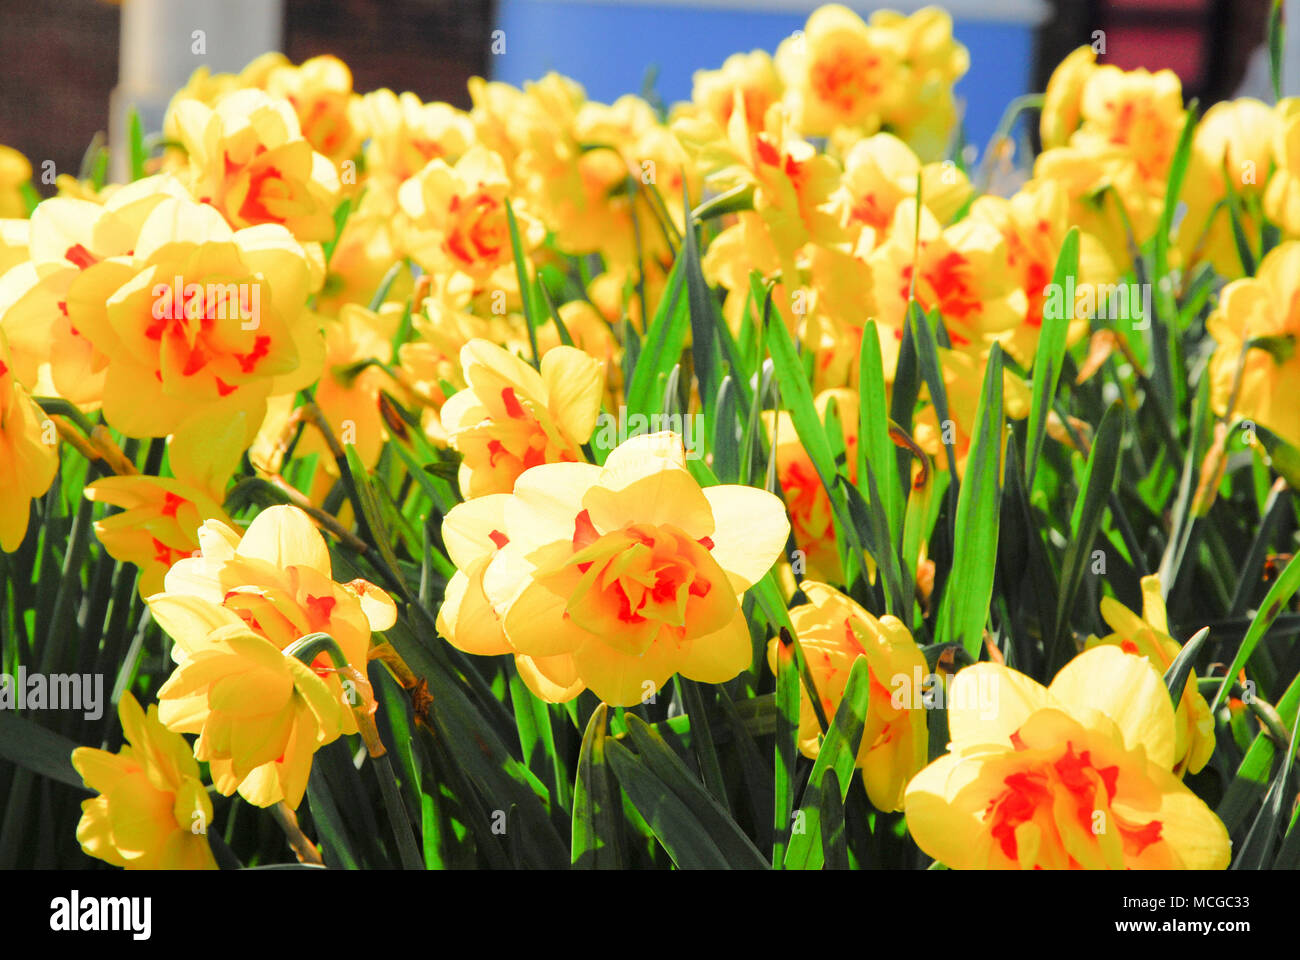 Weymouth, Dorset. 16 April 2018. Coral-centred narcissi looking gorgeous in the warm sunshine on Weymouth seafront Credit: stuart fretwell/Alamy Live News - Stock Image